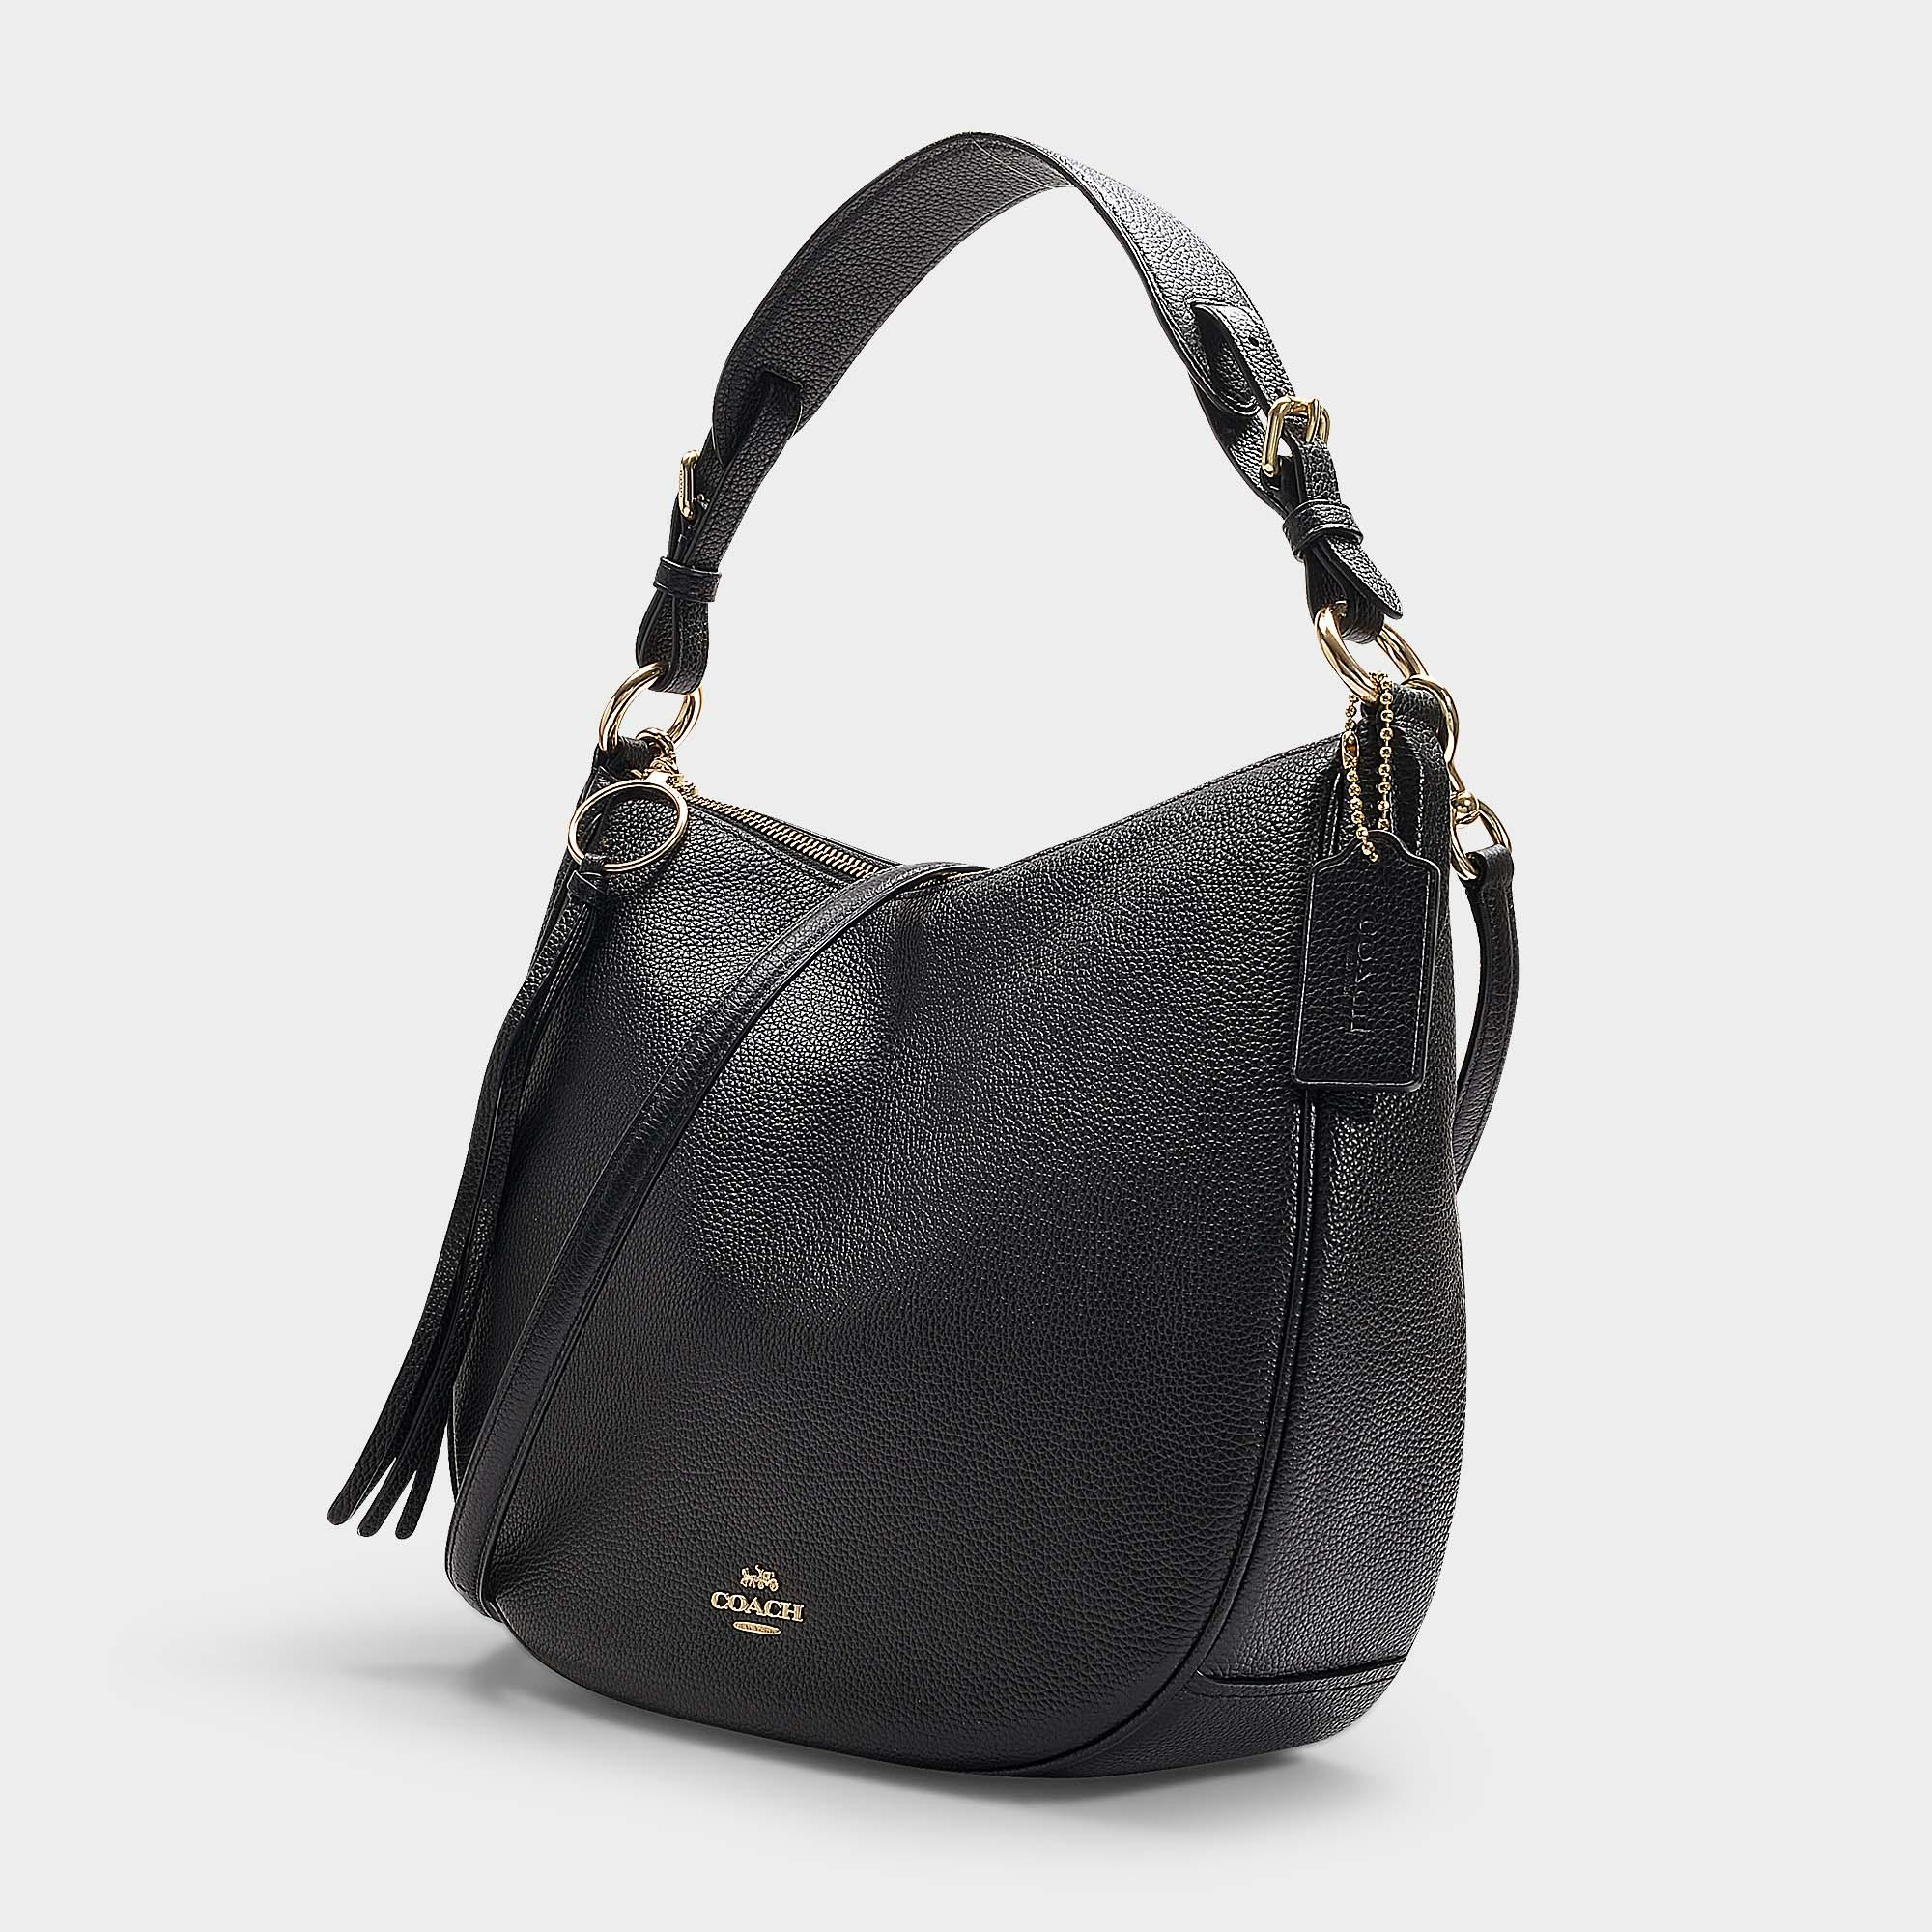 15a52549c990 COACH - Polished Pebble Leather Sutton Hobo Bag In Black Calfskin - Lyst.  View fullscreen